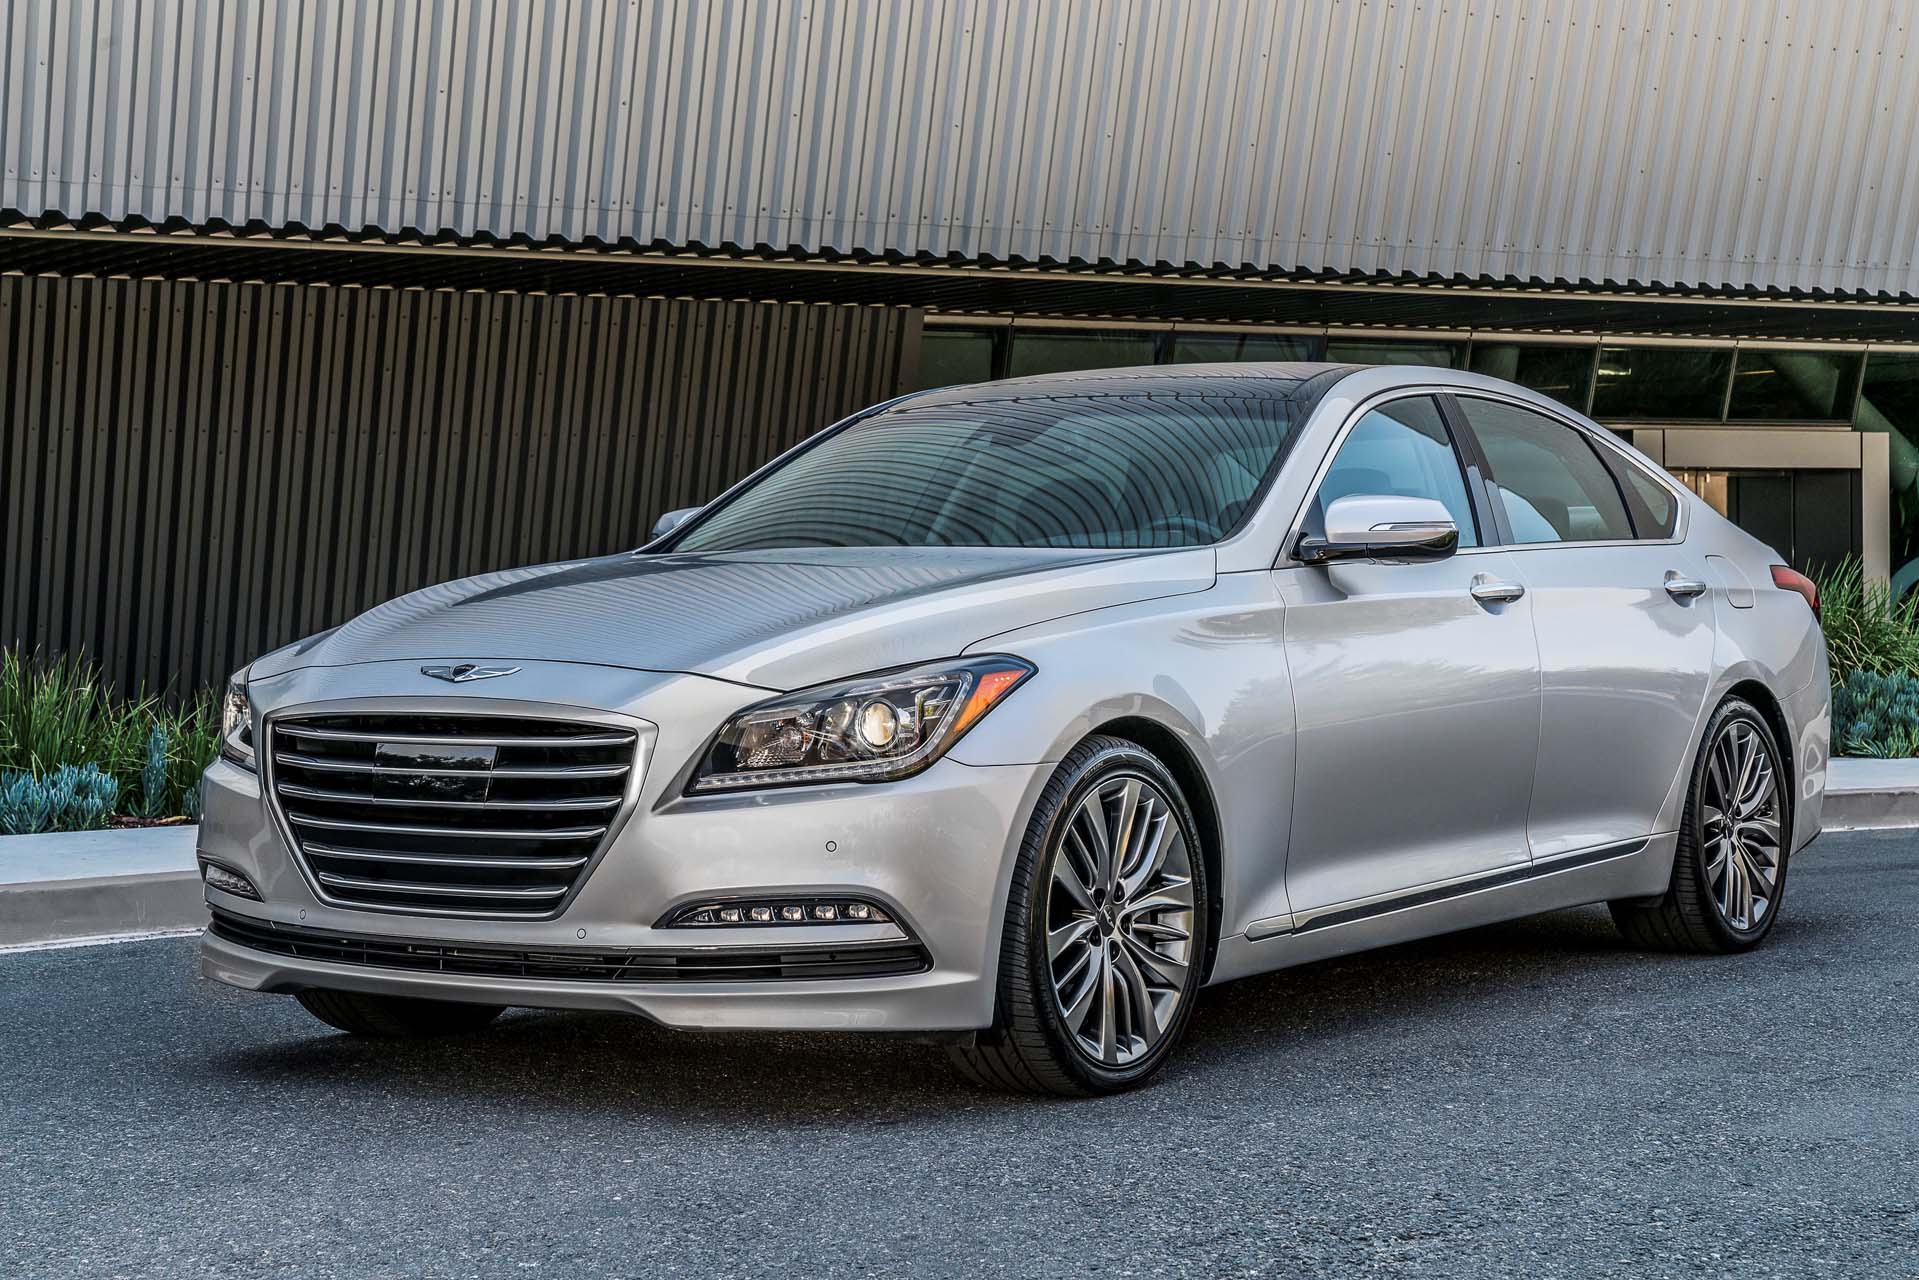 2017 Genesis G80 Vs Cadillac Cts Compare Cars